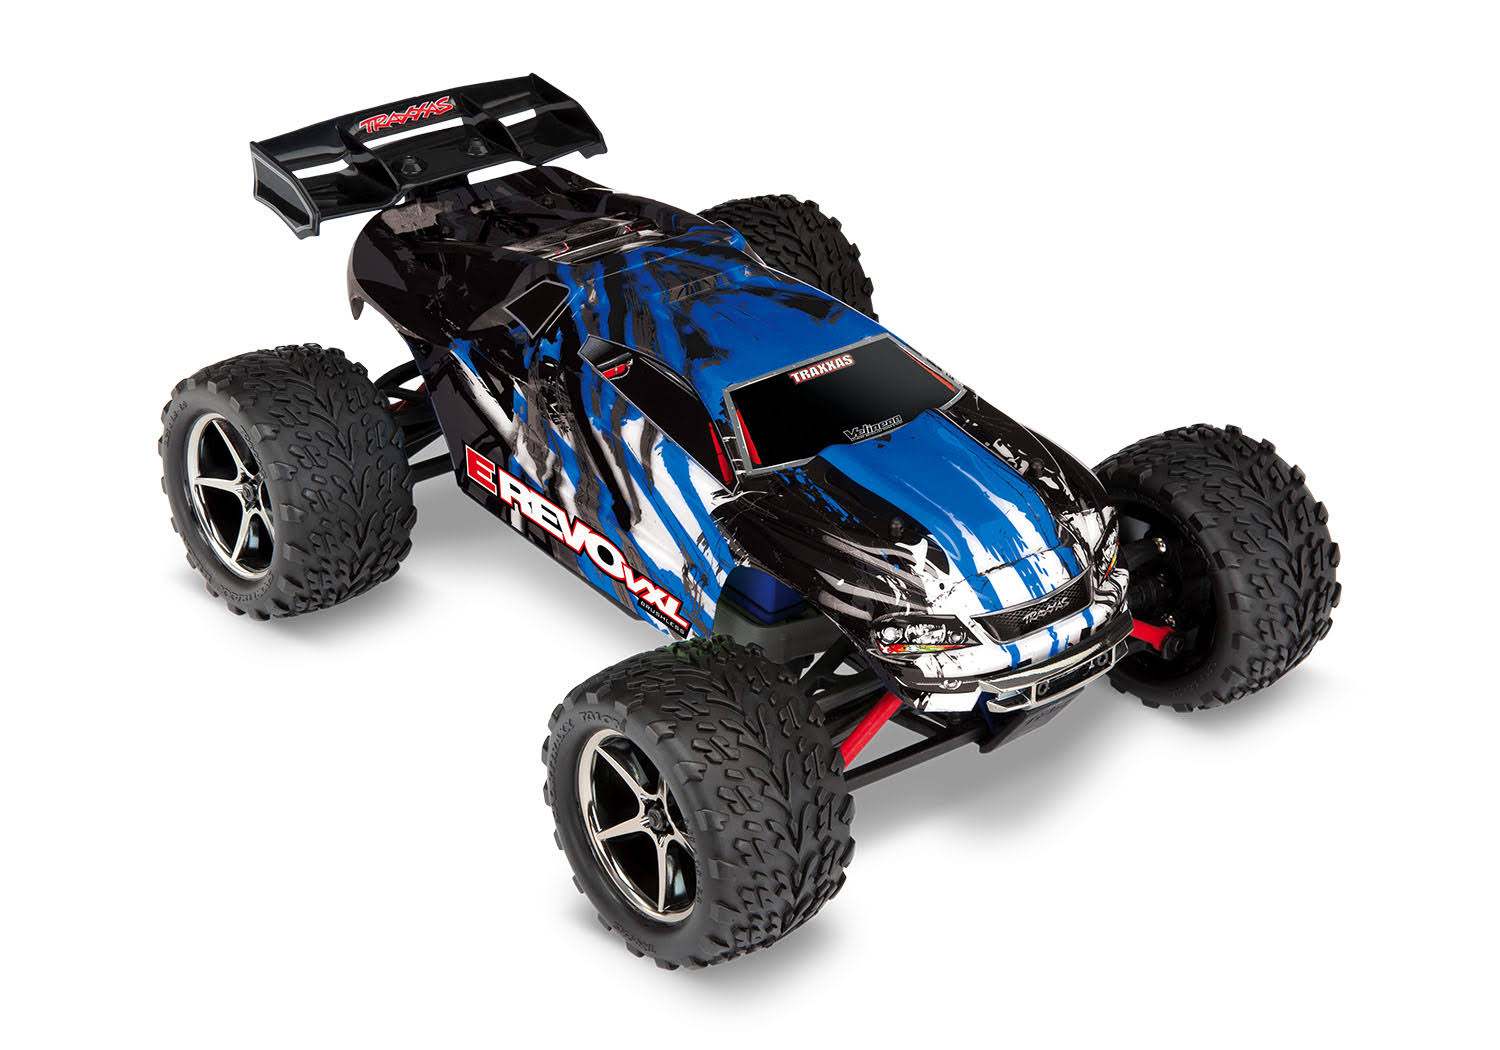 Traxxas 71076-3 E-revo VXL 4WD Monster Truck RTR RC Model Kit - 1:16 Scale